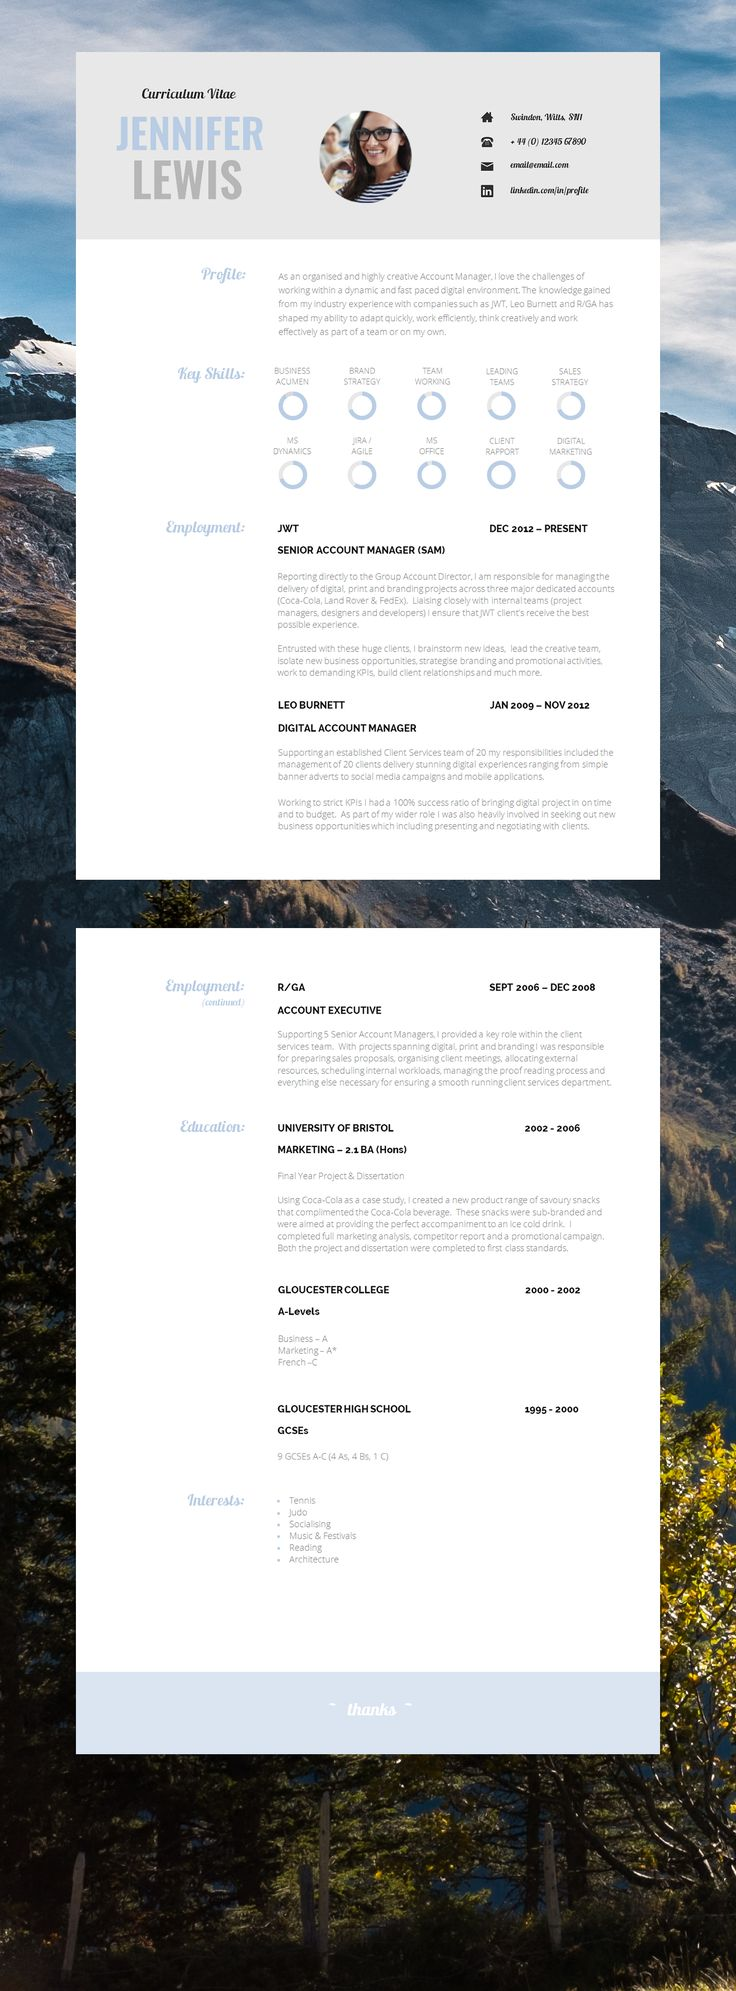 CV | Curriculum Vitae | Resume Template | CV Template | A simple yet sleek example of a perfect #JobHunting Tool! #AmazingCV